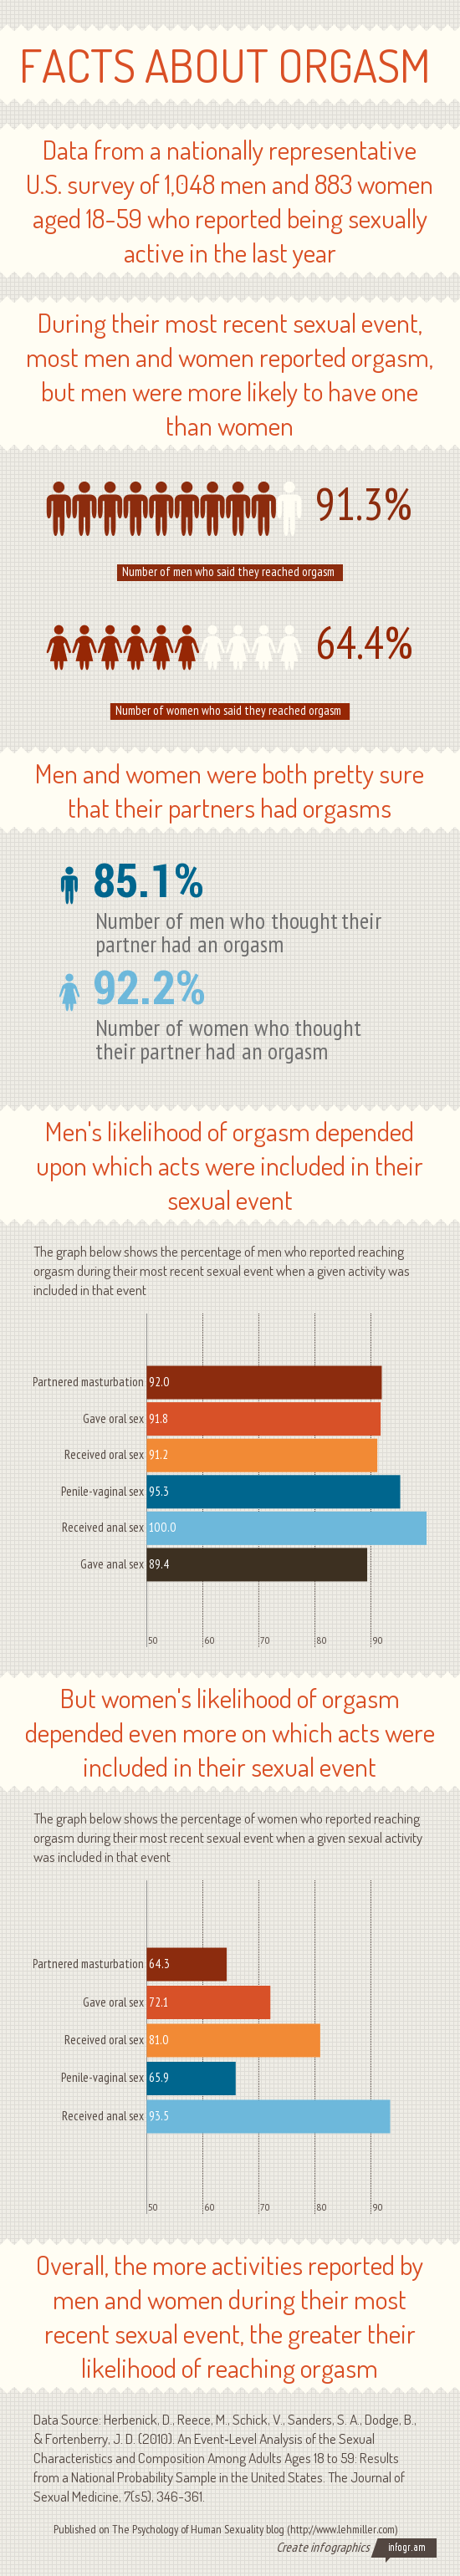 facts-about-orgasm-infographic.png